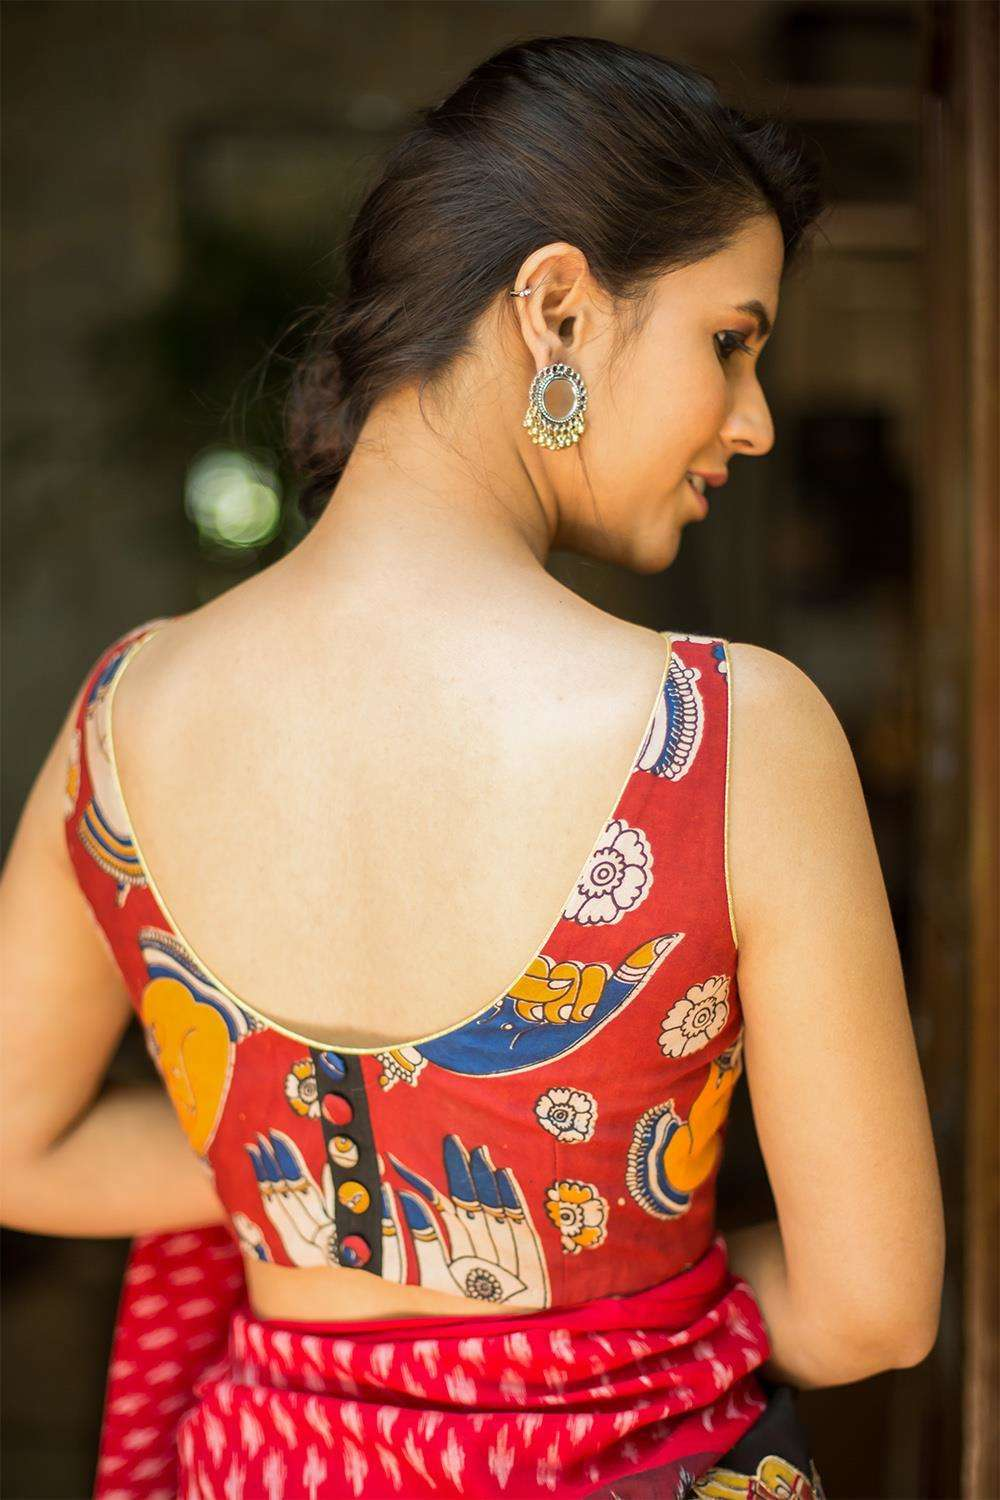 Maroon Kalamkari semi crepe boatneck sleeveless blouse - House of Blouse